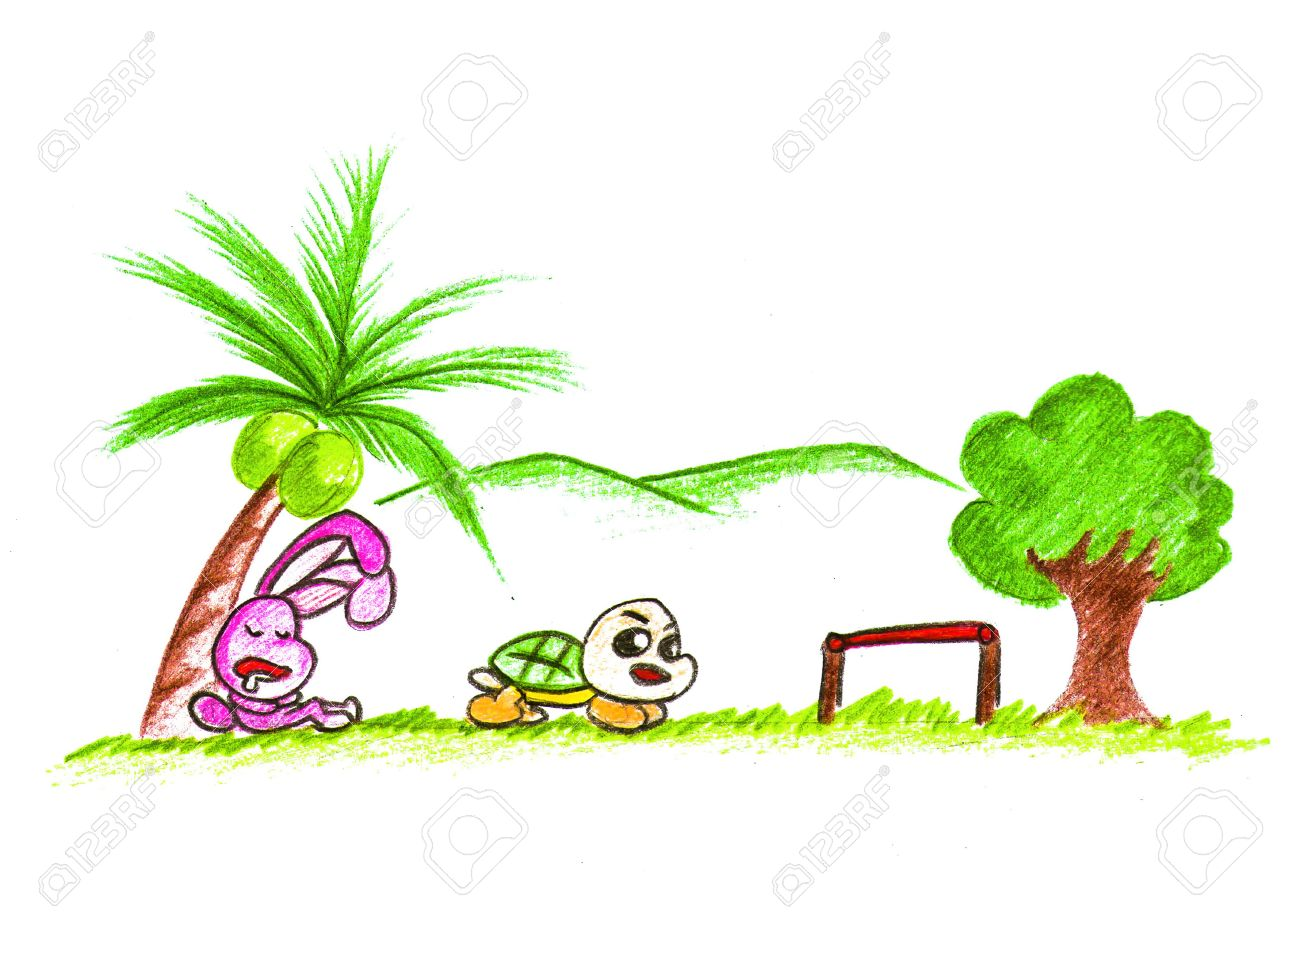 source of image: http://previews.123rf.com/images/mansum007/mansum0071501/mansum007150100189/35827735-cartoon-rabbit-and-turtle-Stock-Photo.jpg